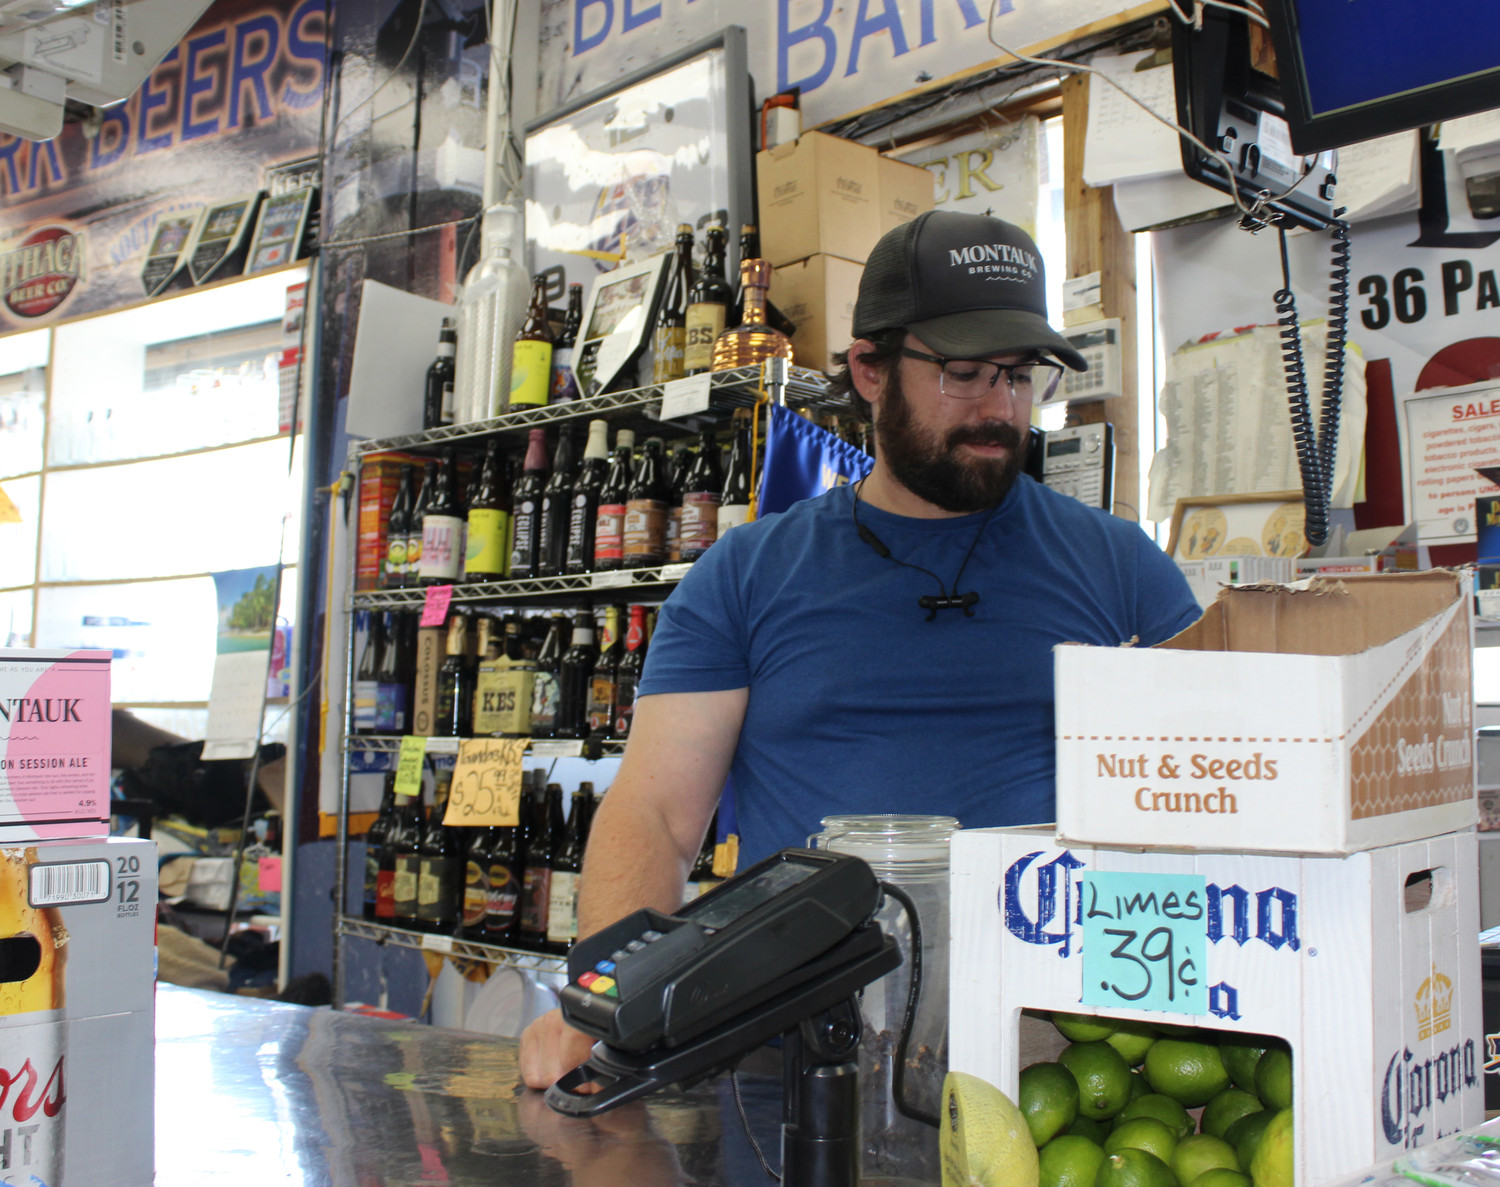 Independence Day is the busiest day of the year for Jared Kane at Beverage Barn. The 35-year-old pulled up to his storefront on July Fourth at 8:30 a.m., he said, and saw a number of customers patiently waiting in their cars.